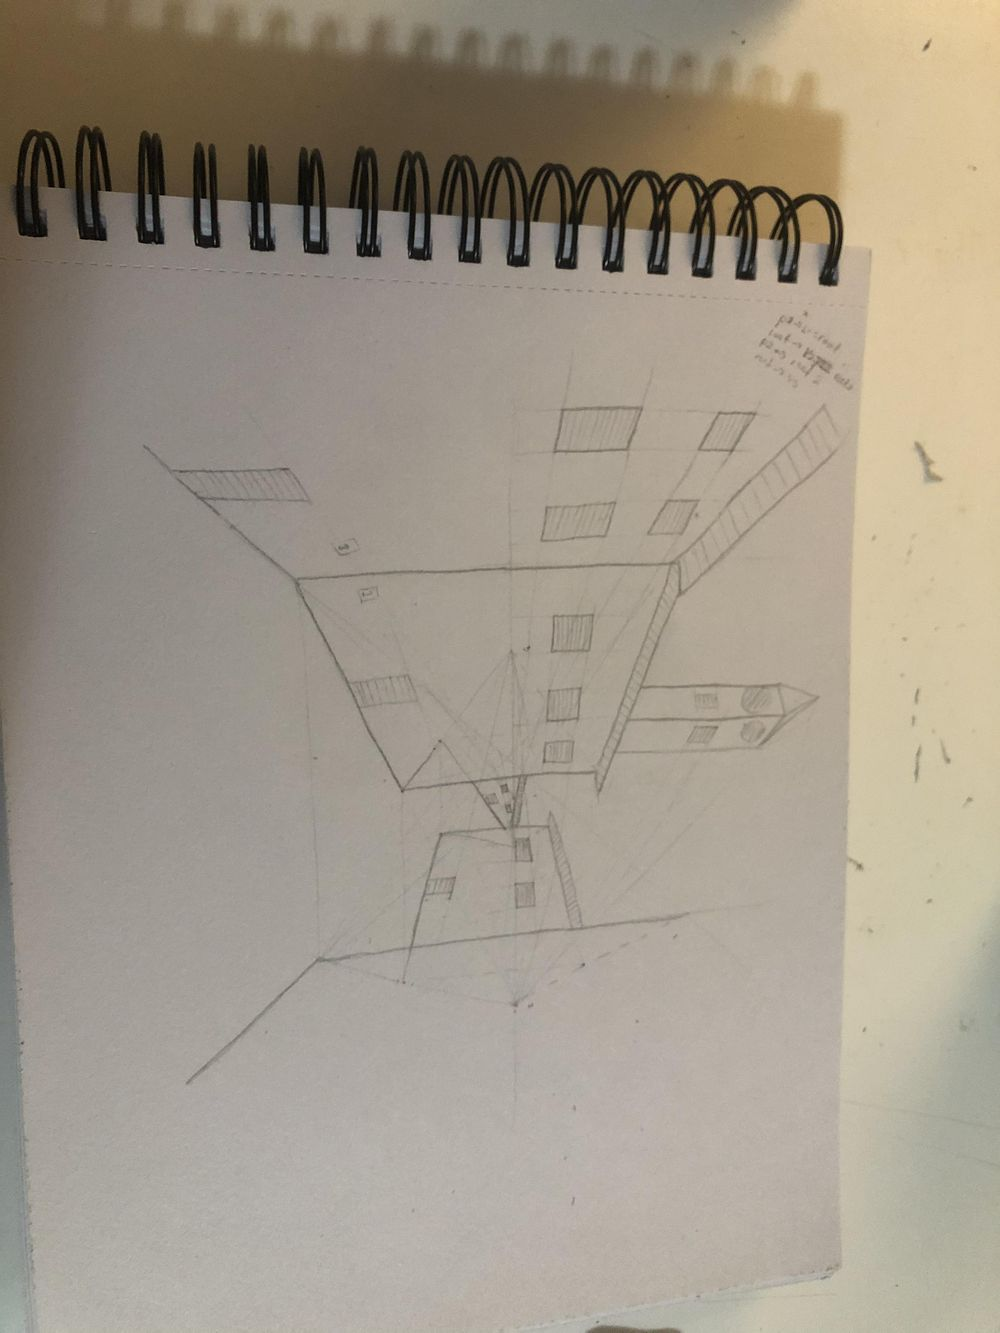 Forshortening perspective 1,2 and architectural perspective - image 3 - student project